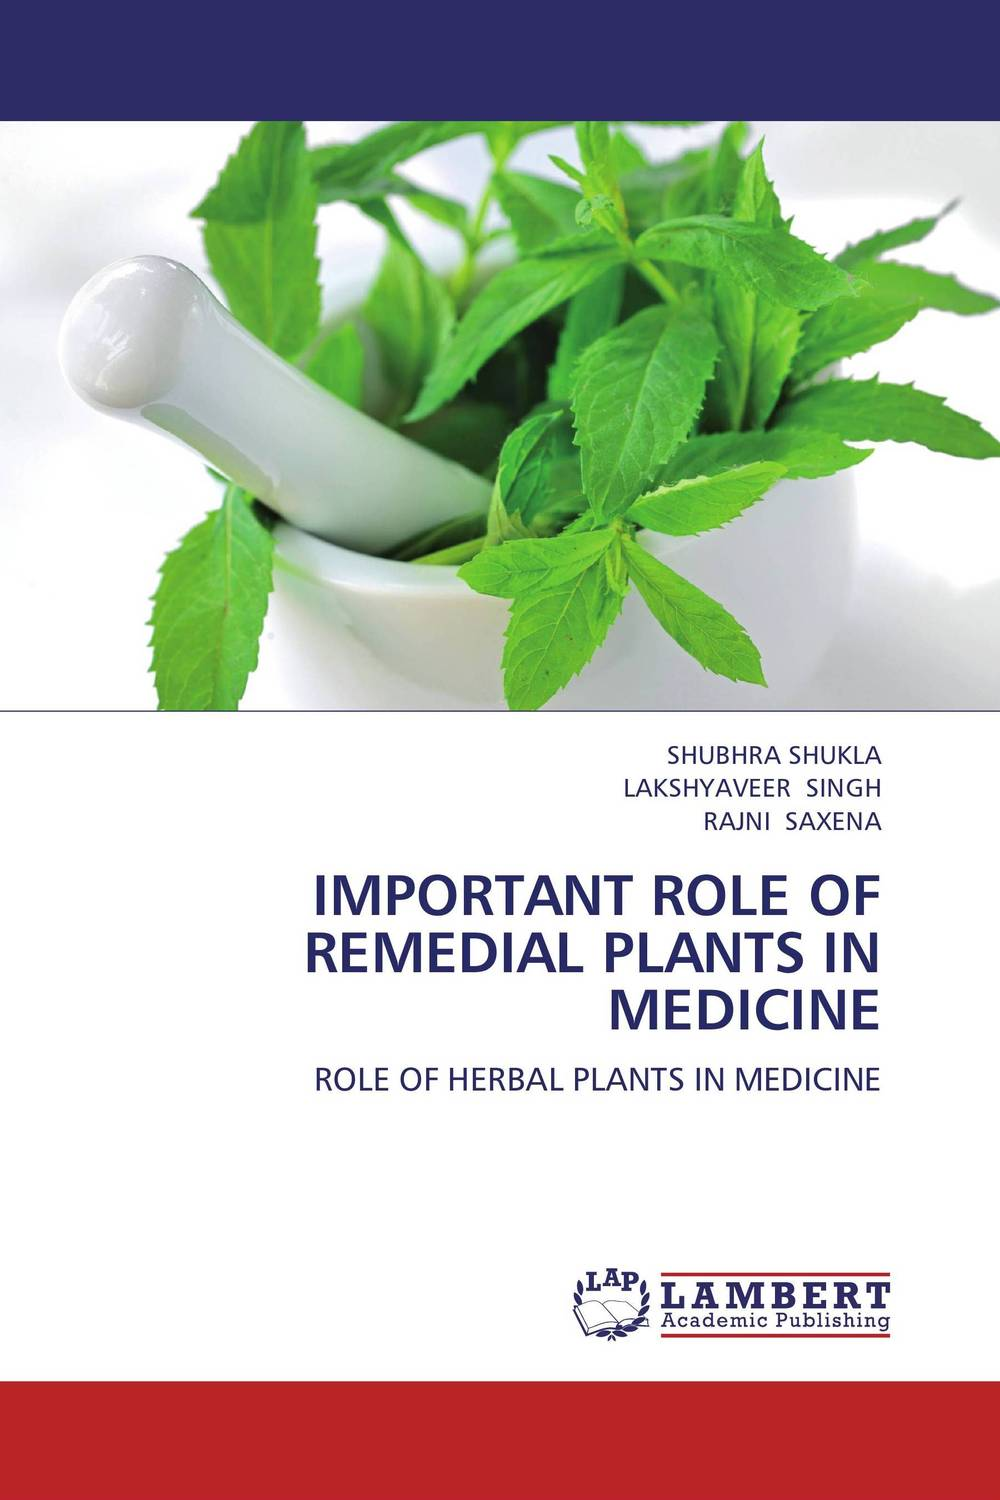 IMPORTANT ROLE OF REMEDIAL PLANTS IN MEDICINE discovery of natural antioxidants from sudanese medicinal plants